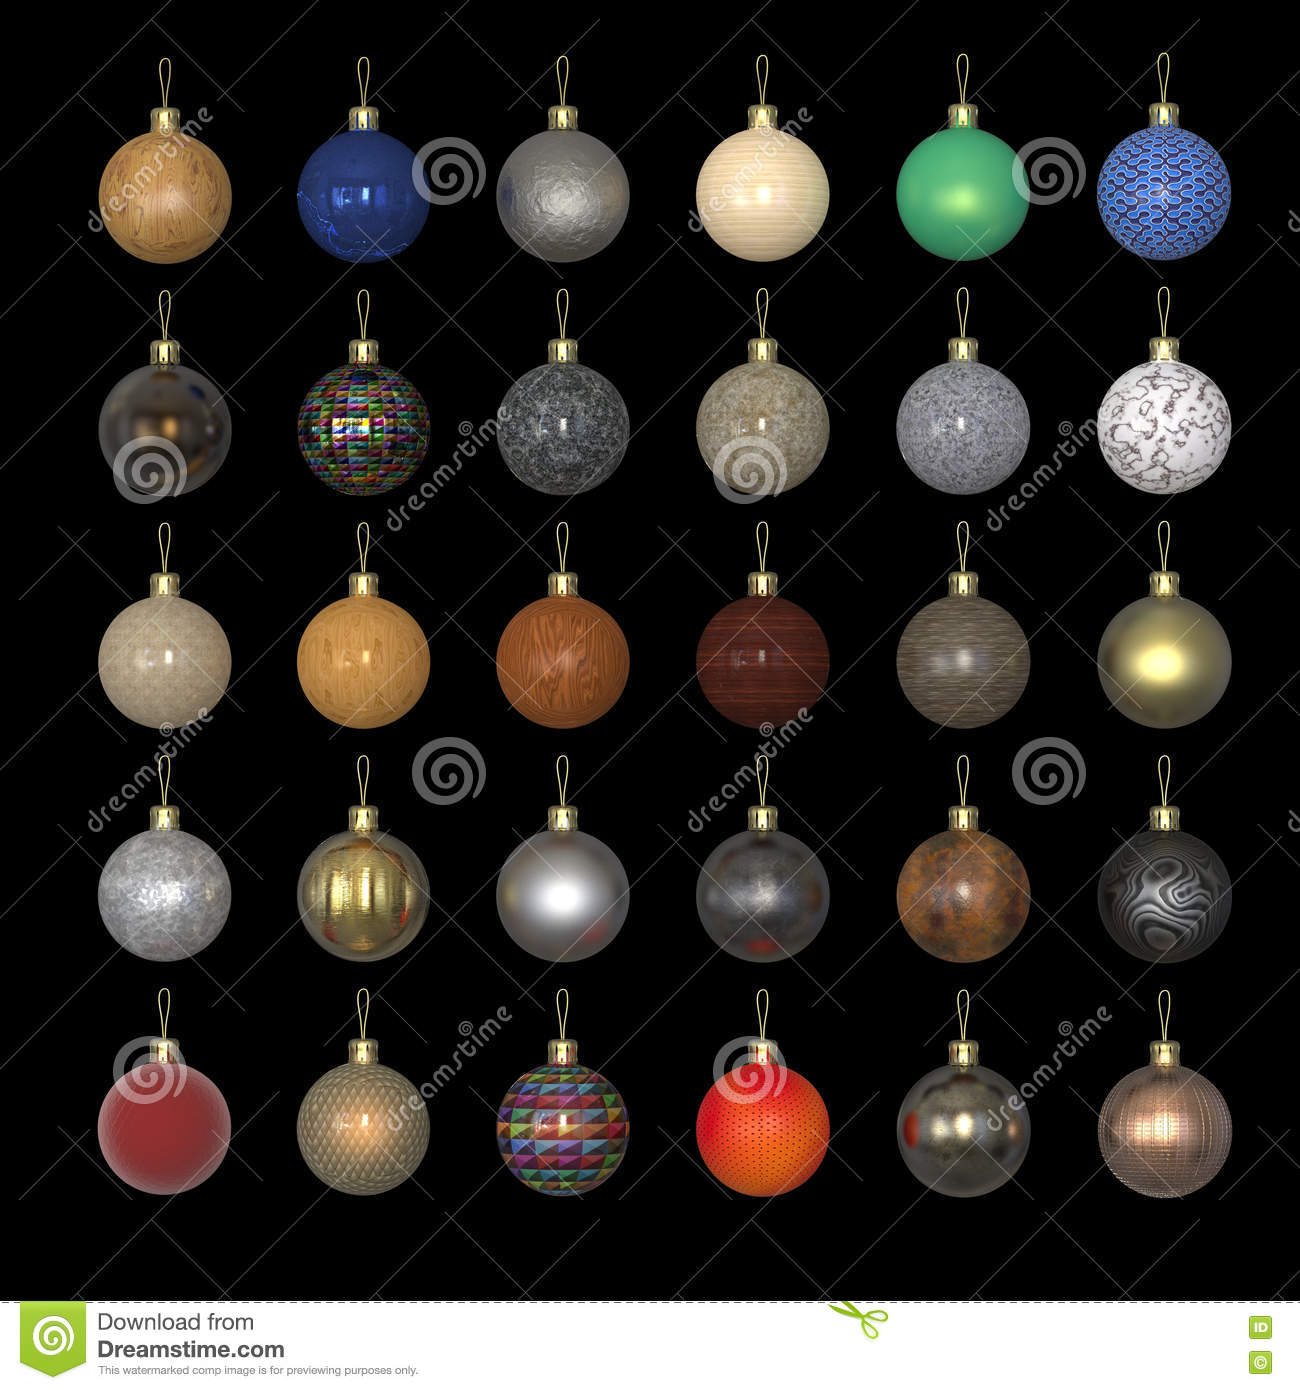 Colorful Christmas New Year Balls Made Out Of Different Materials On